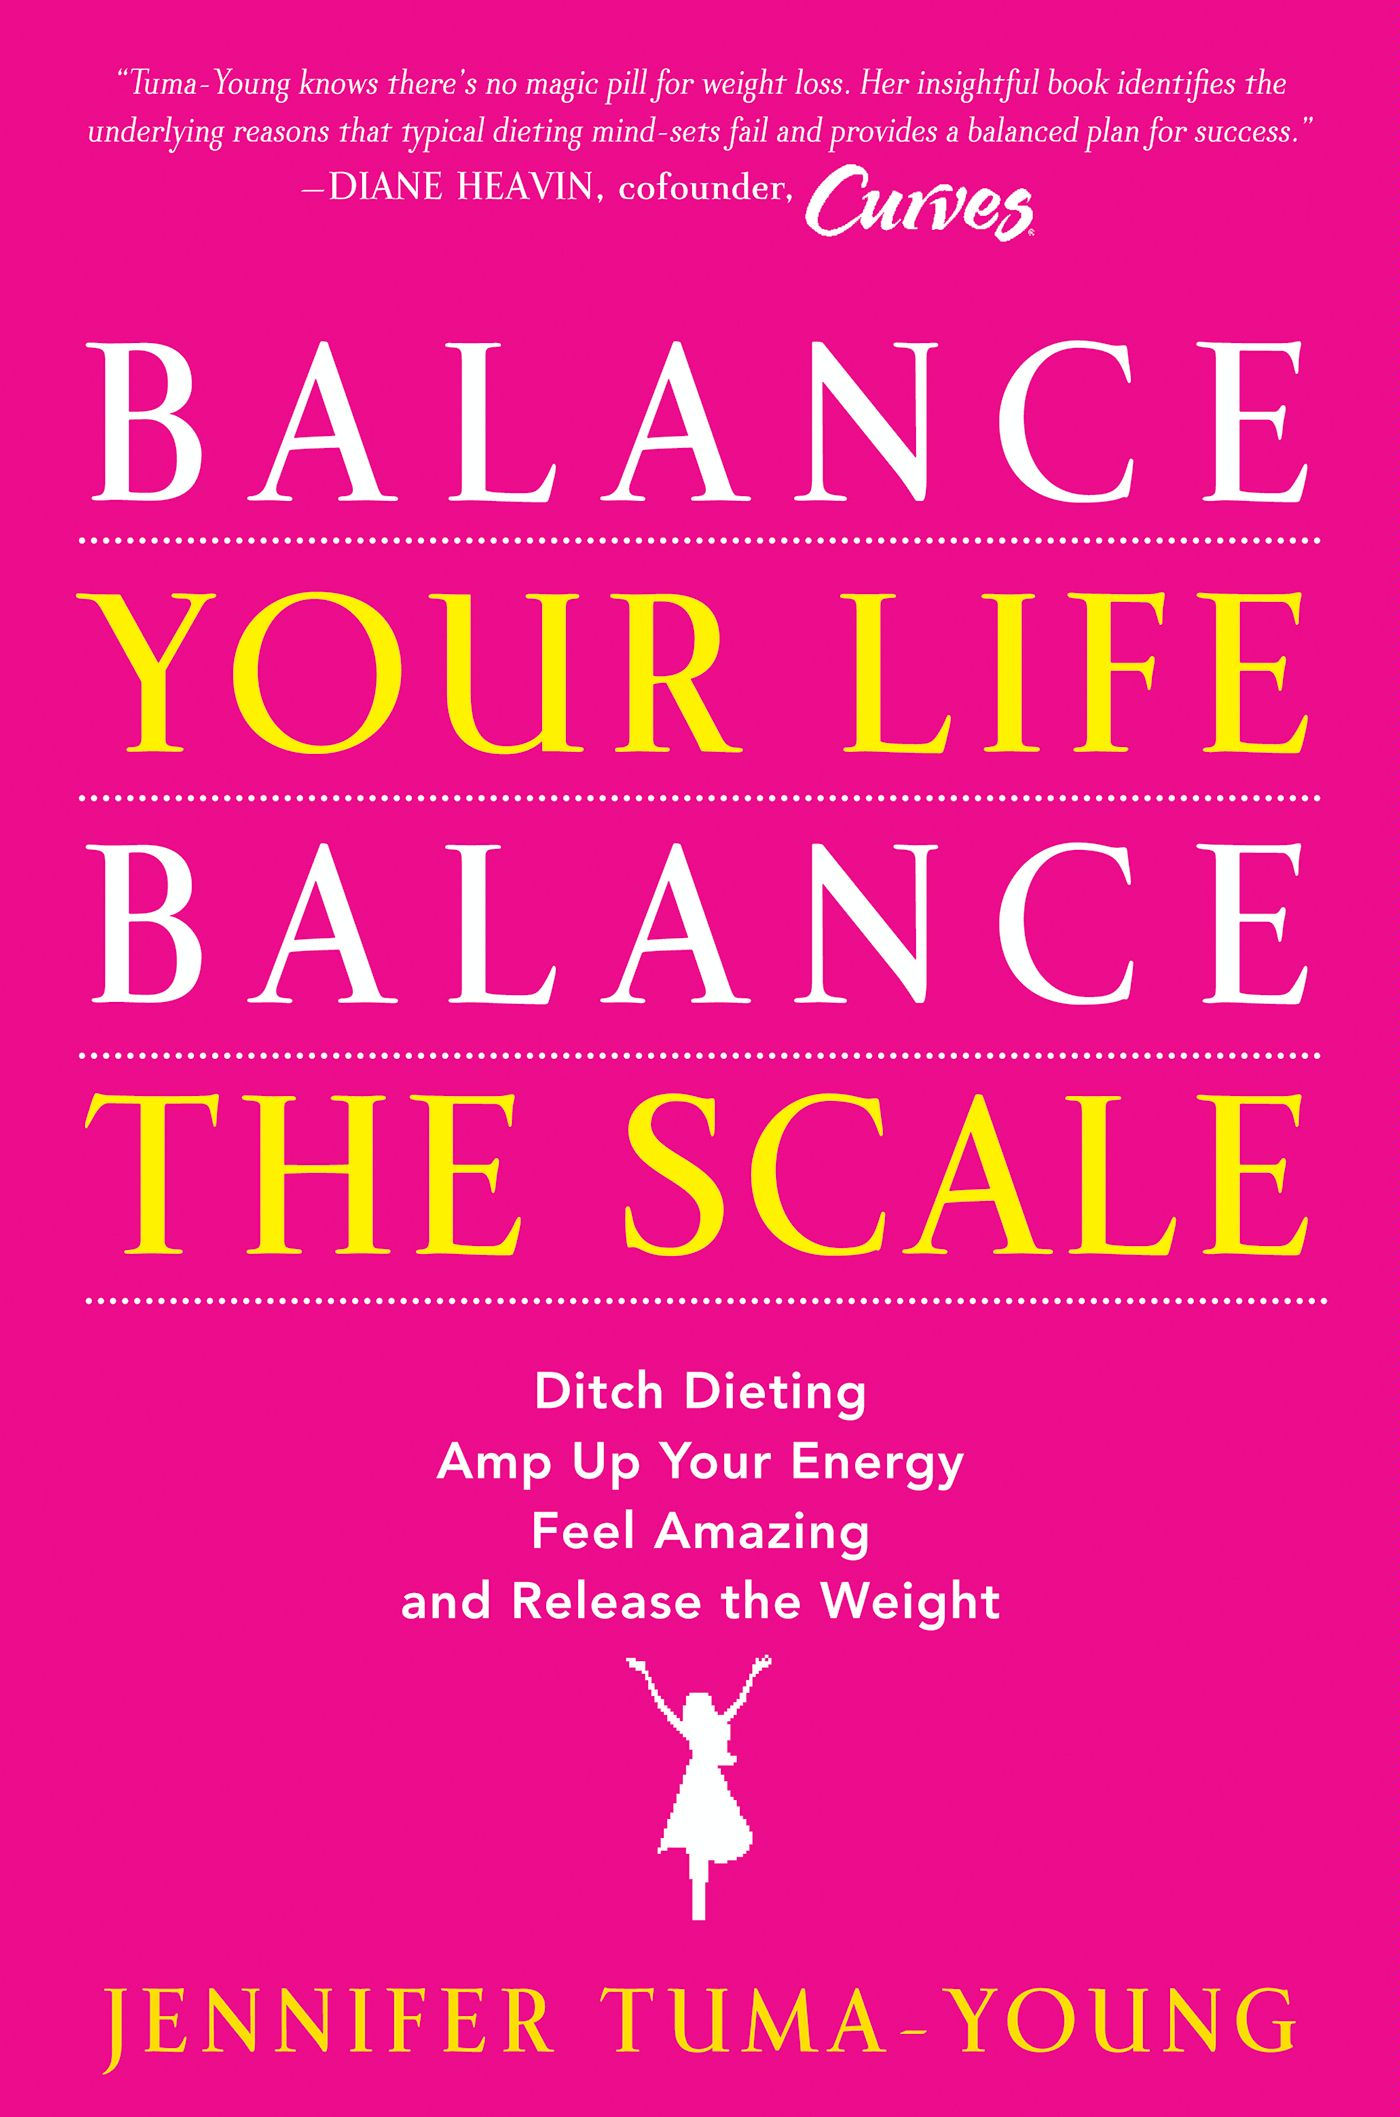 Balance Your Life, Balance the Scale By: Jennifer Tuma-Young